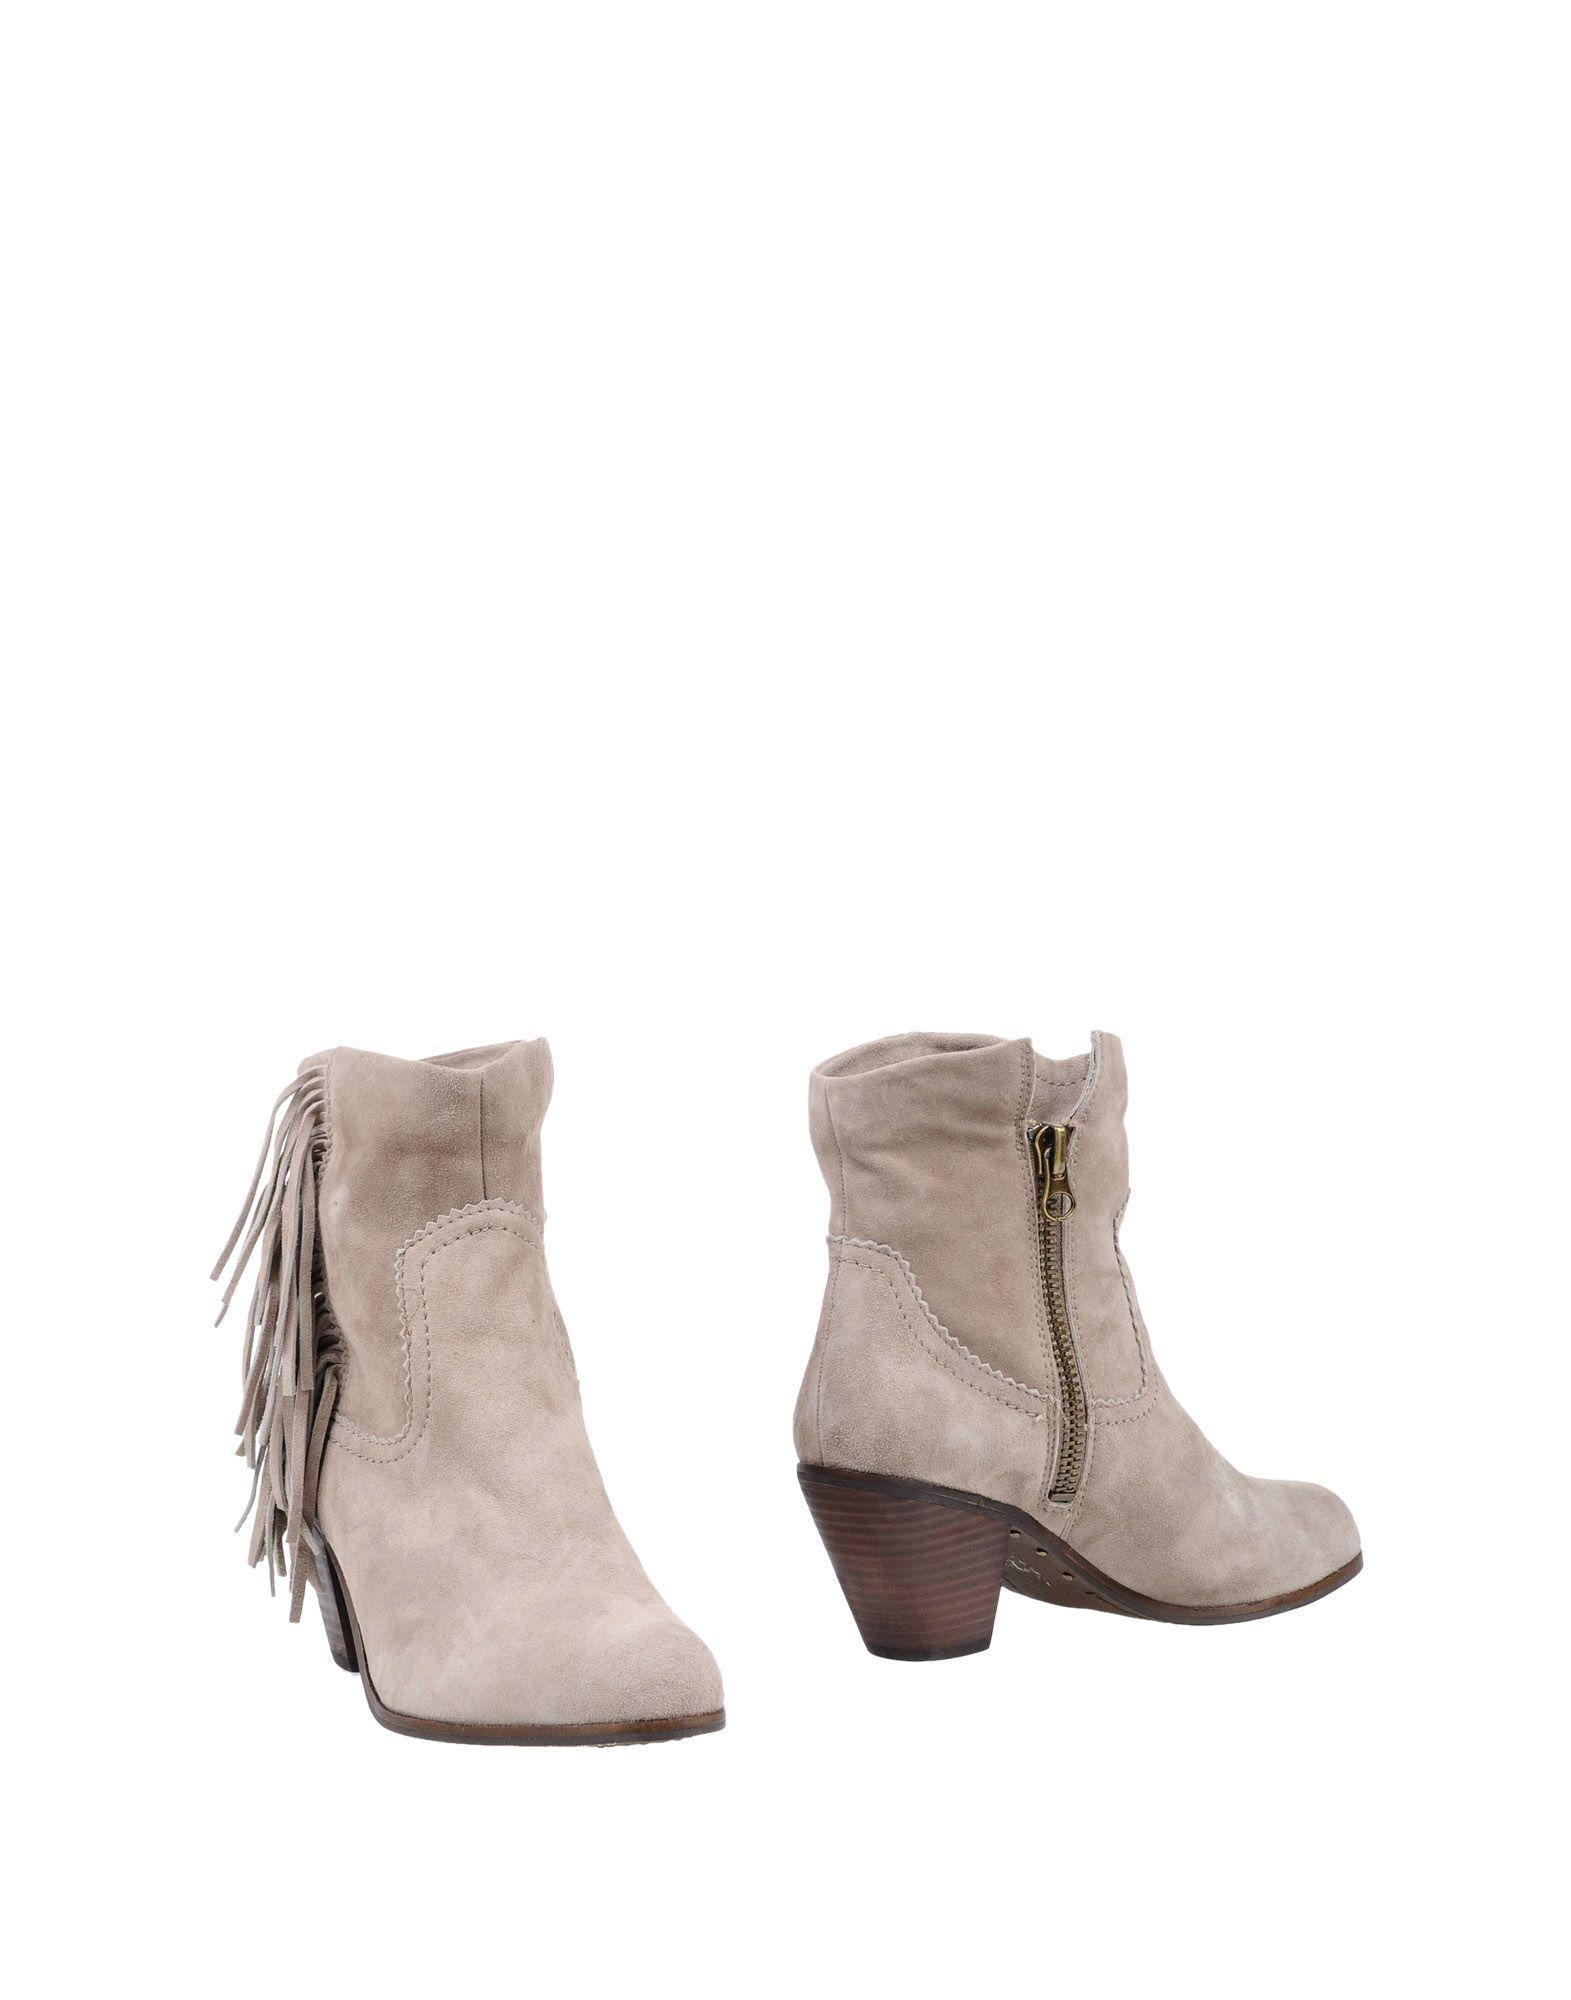 Sam Edelman Ankle Boots In Dove Grey